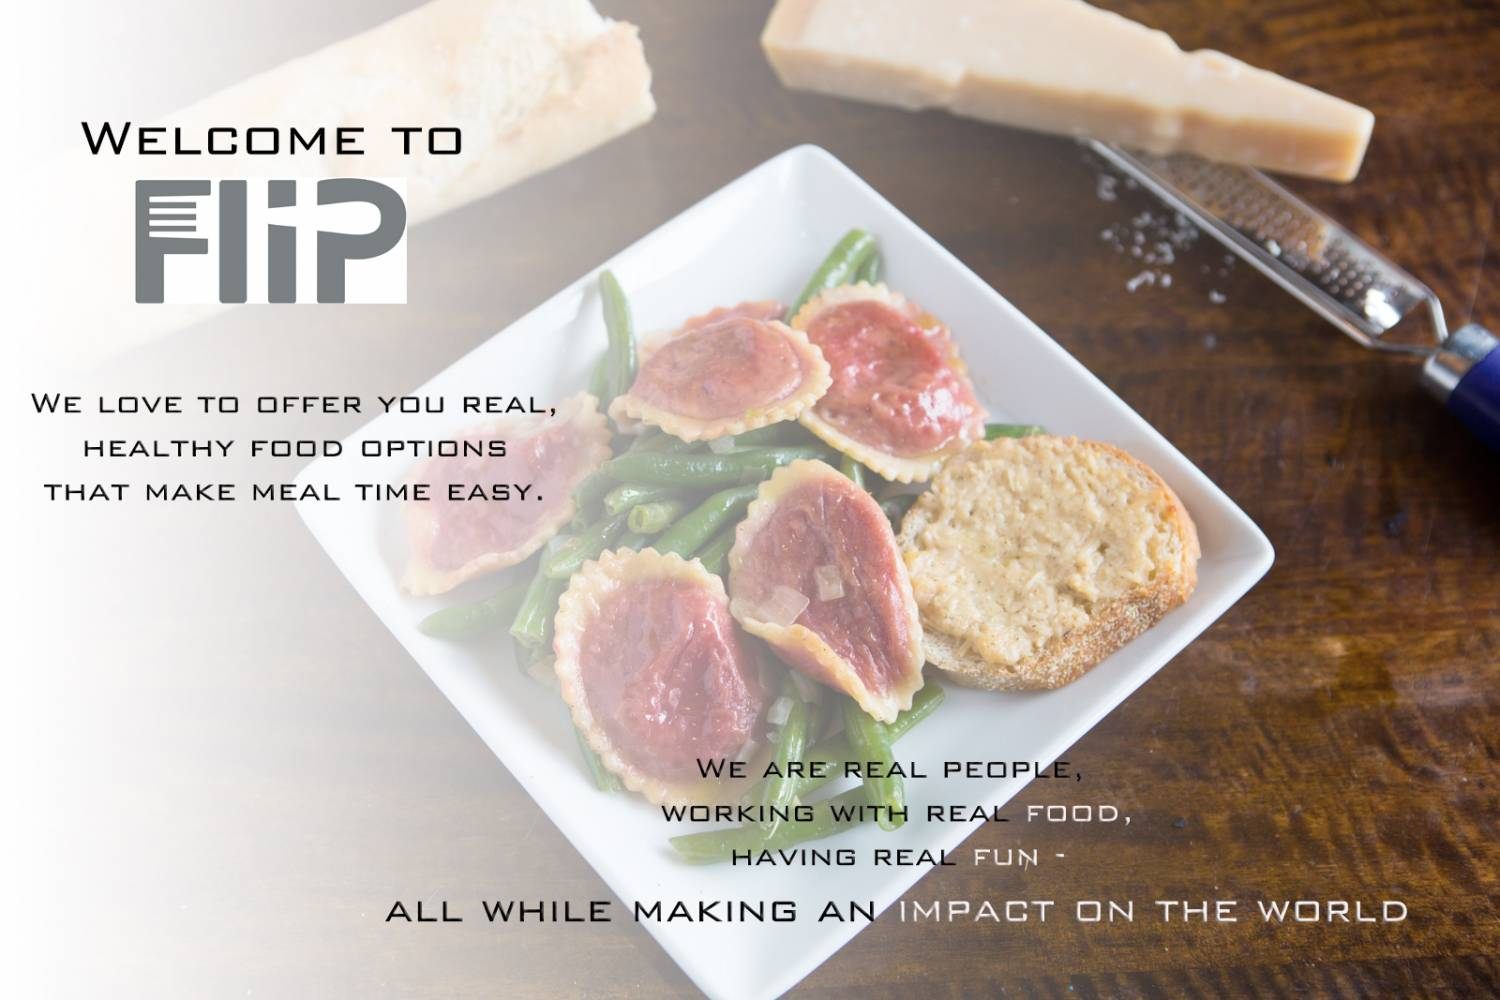 Welcome to FliP Food Company! We are a company with a conscience. Our mission is revolutionize the way Americans eat food through thoughtful meal choice, minimized packaging, and community engagment. Our frozen dinners take the stress out of meal time and